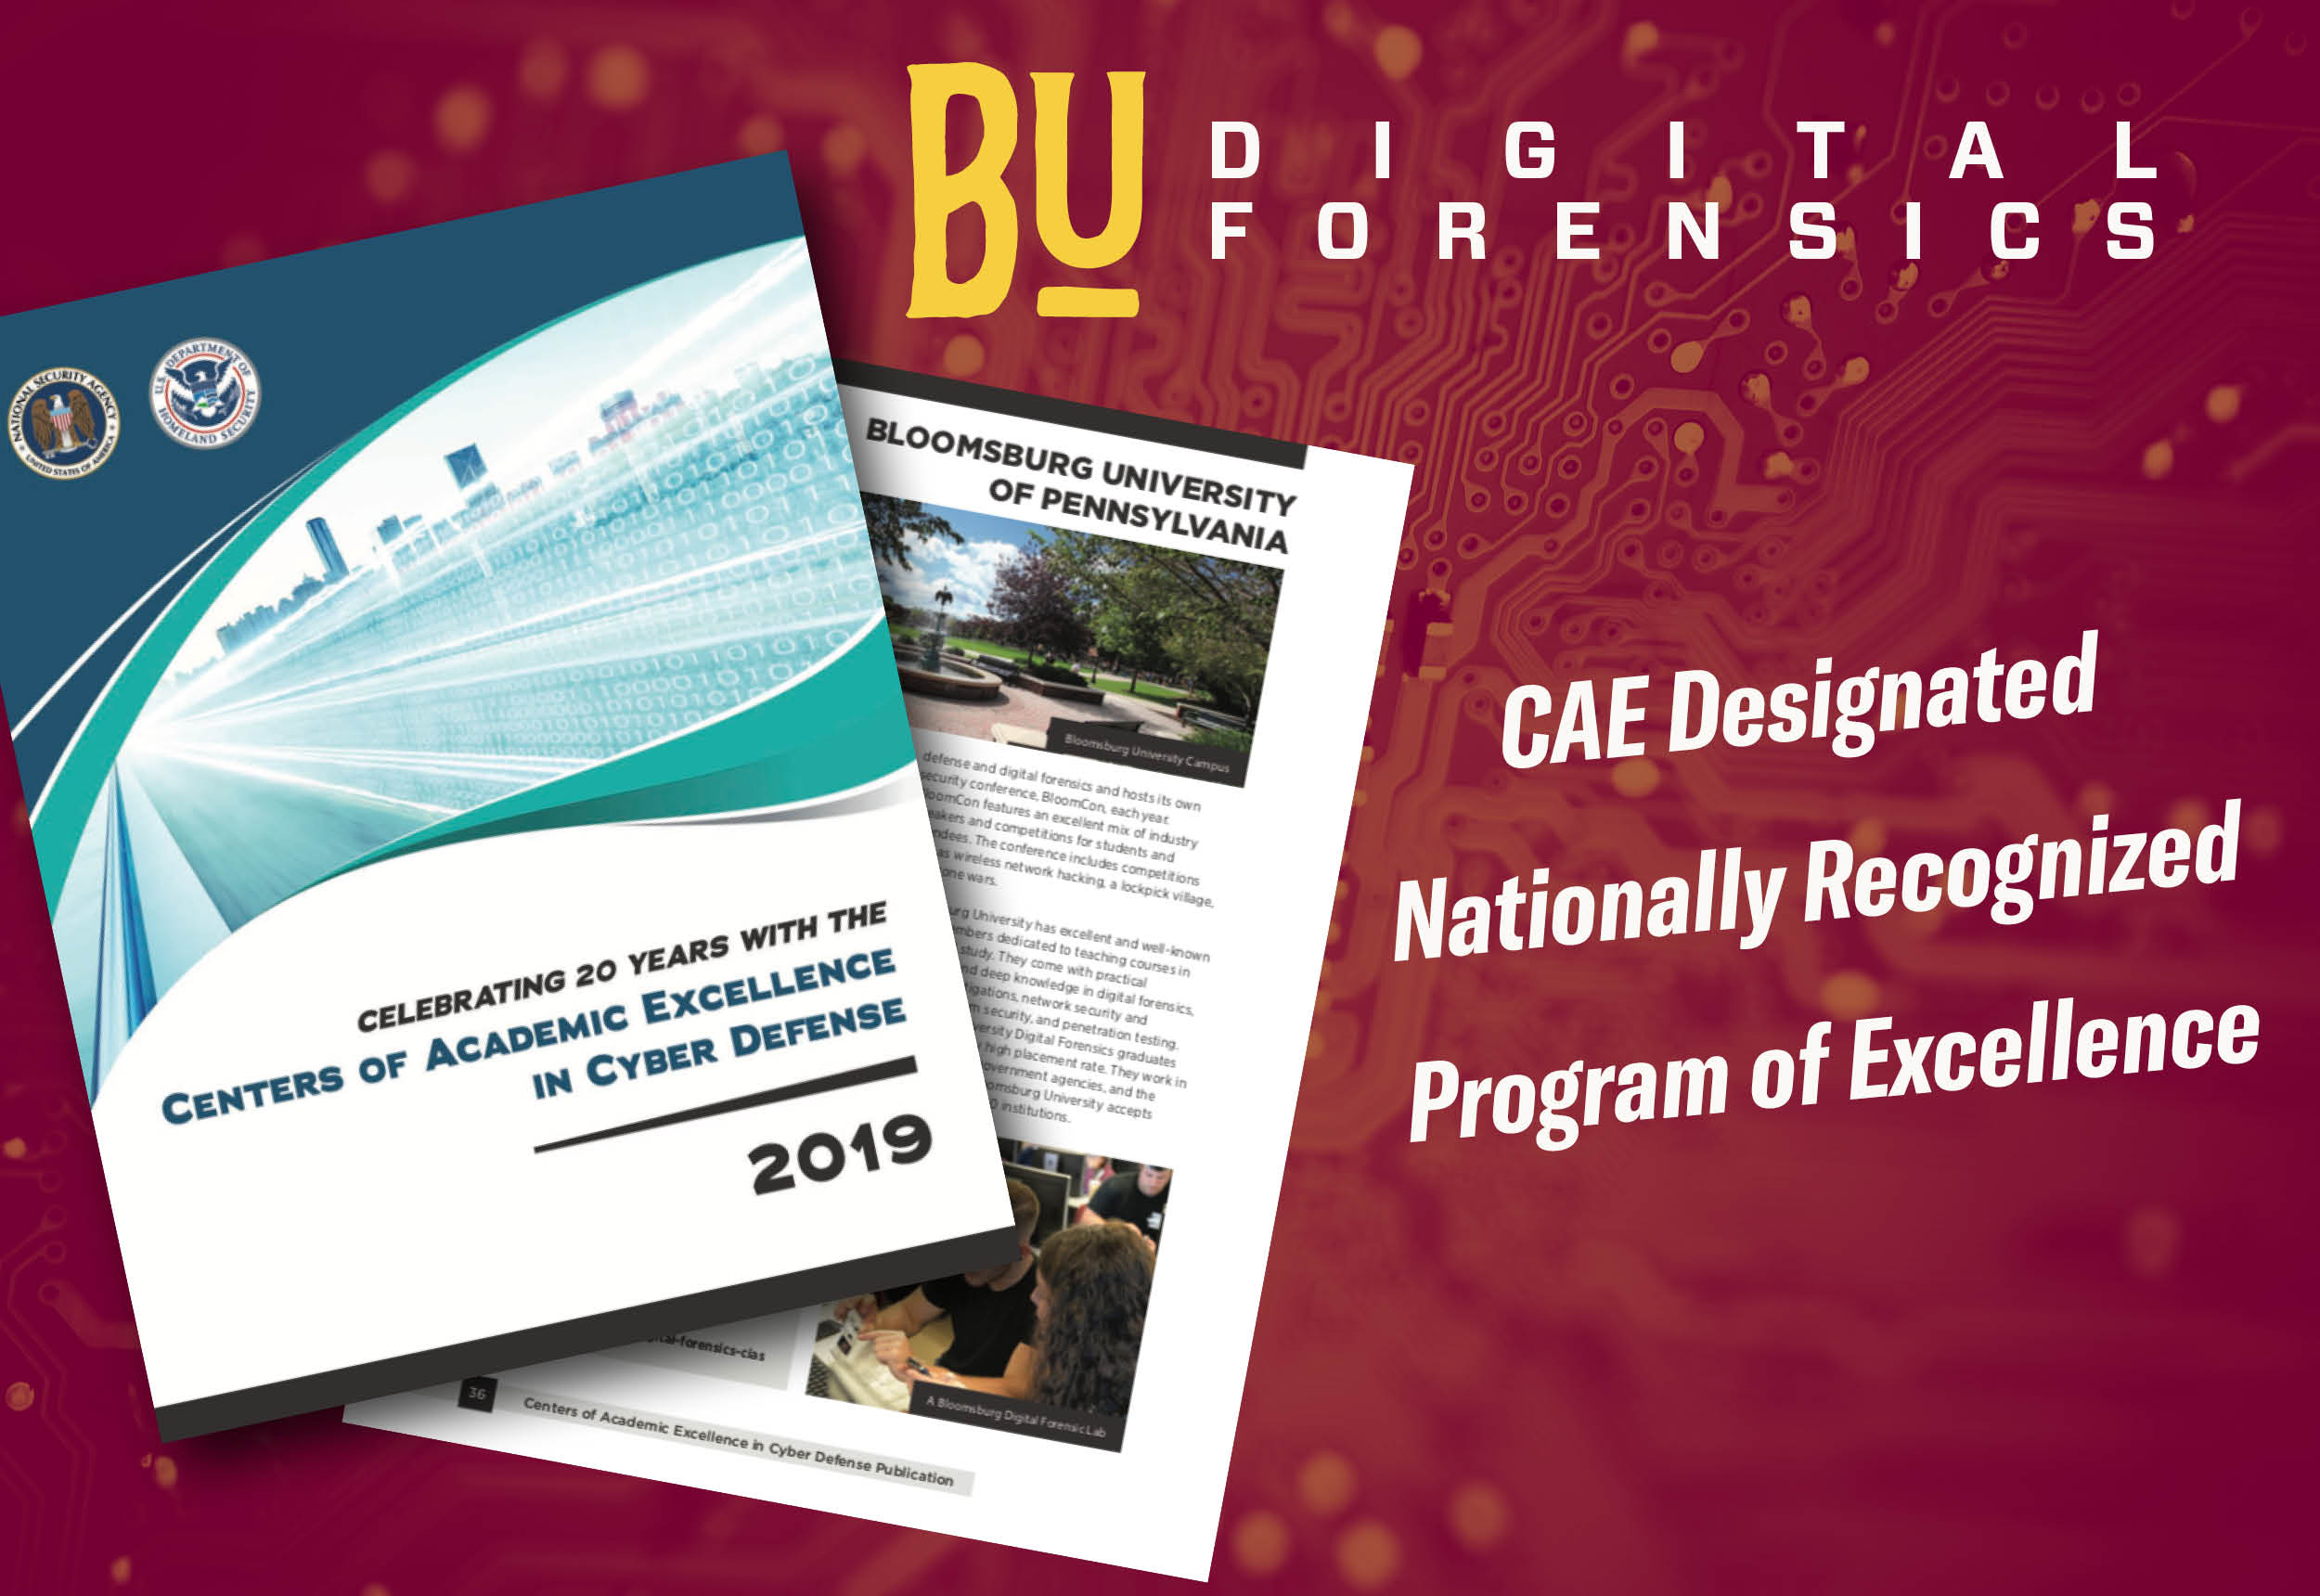 Center of Academic Excellence in Cyber Defense